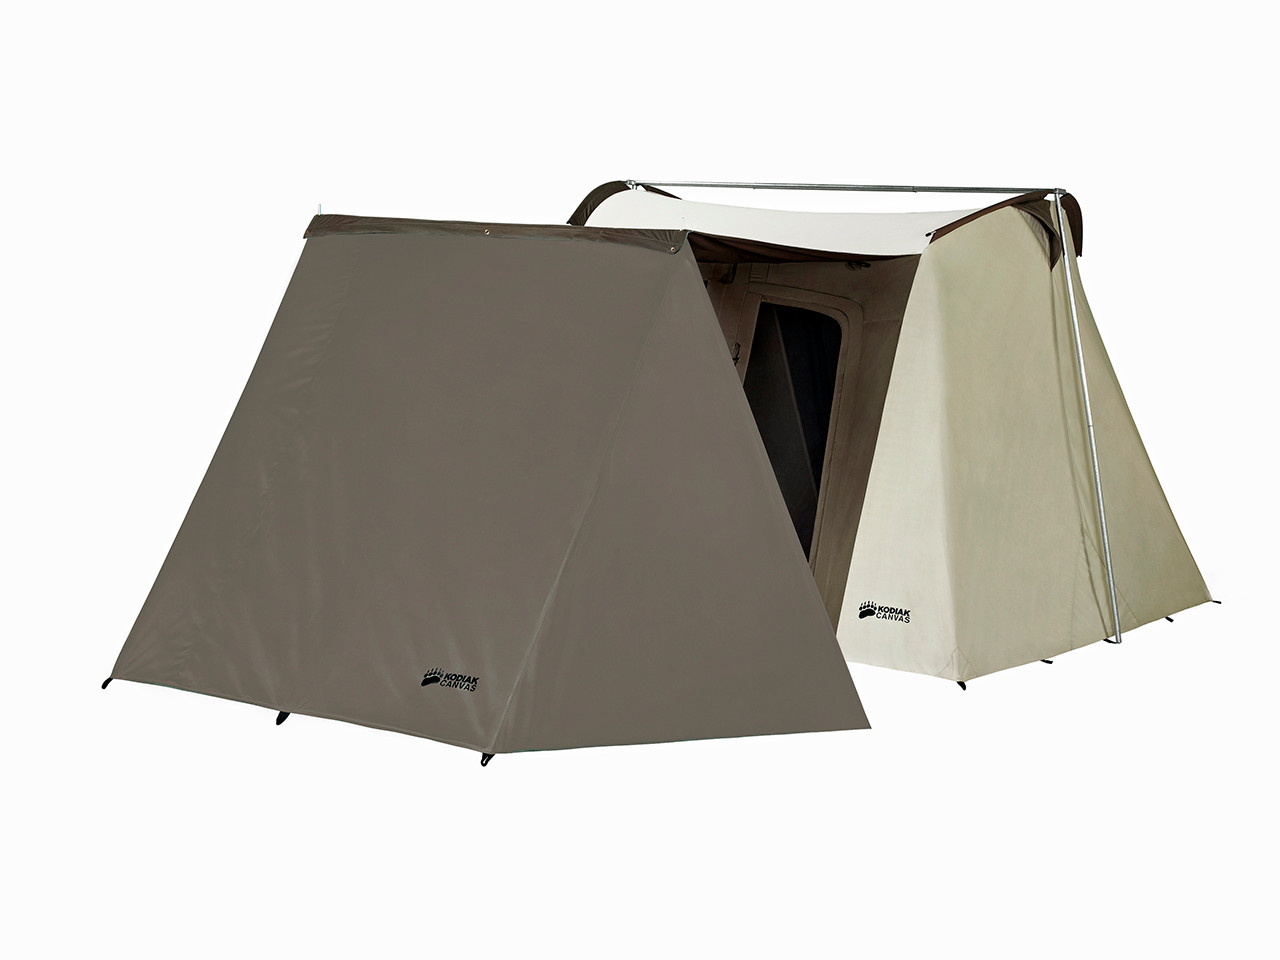 Tent sold separately